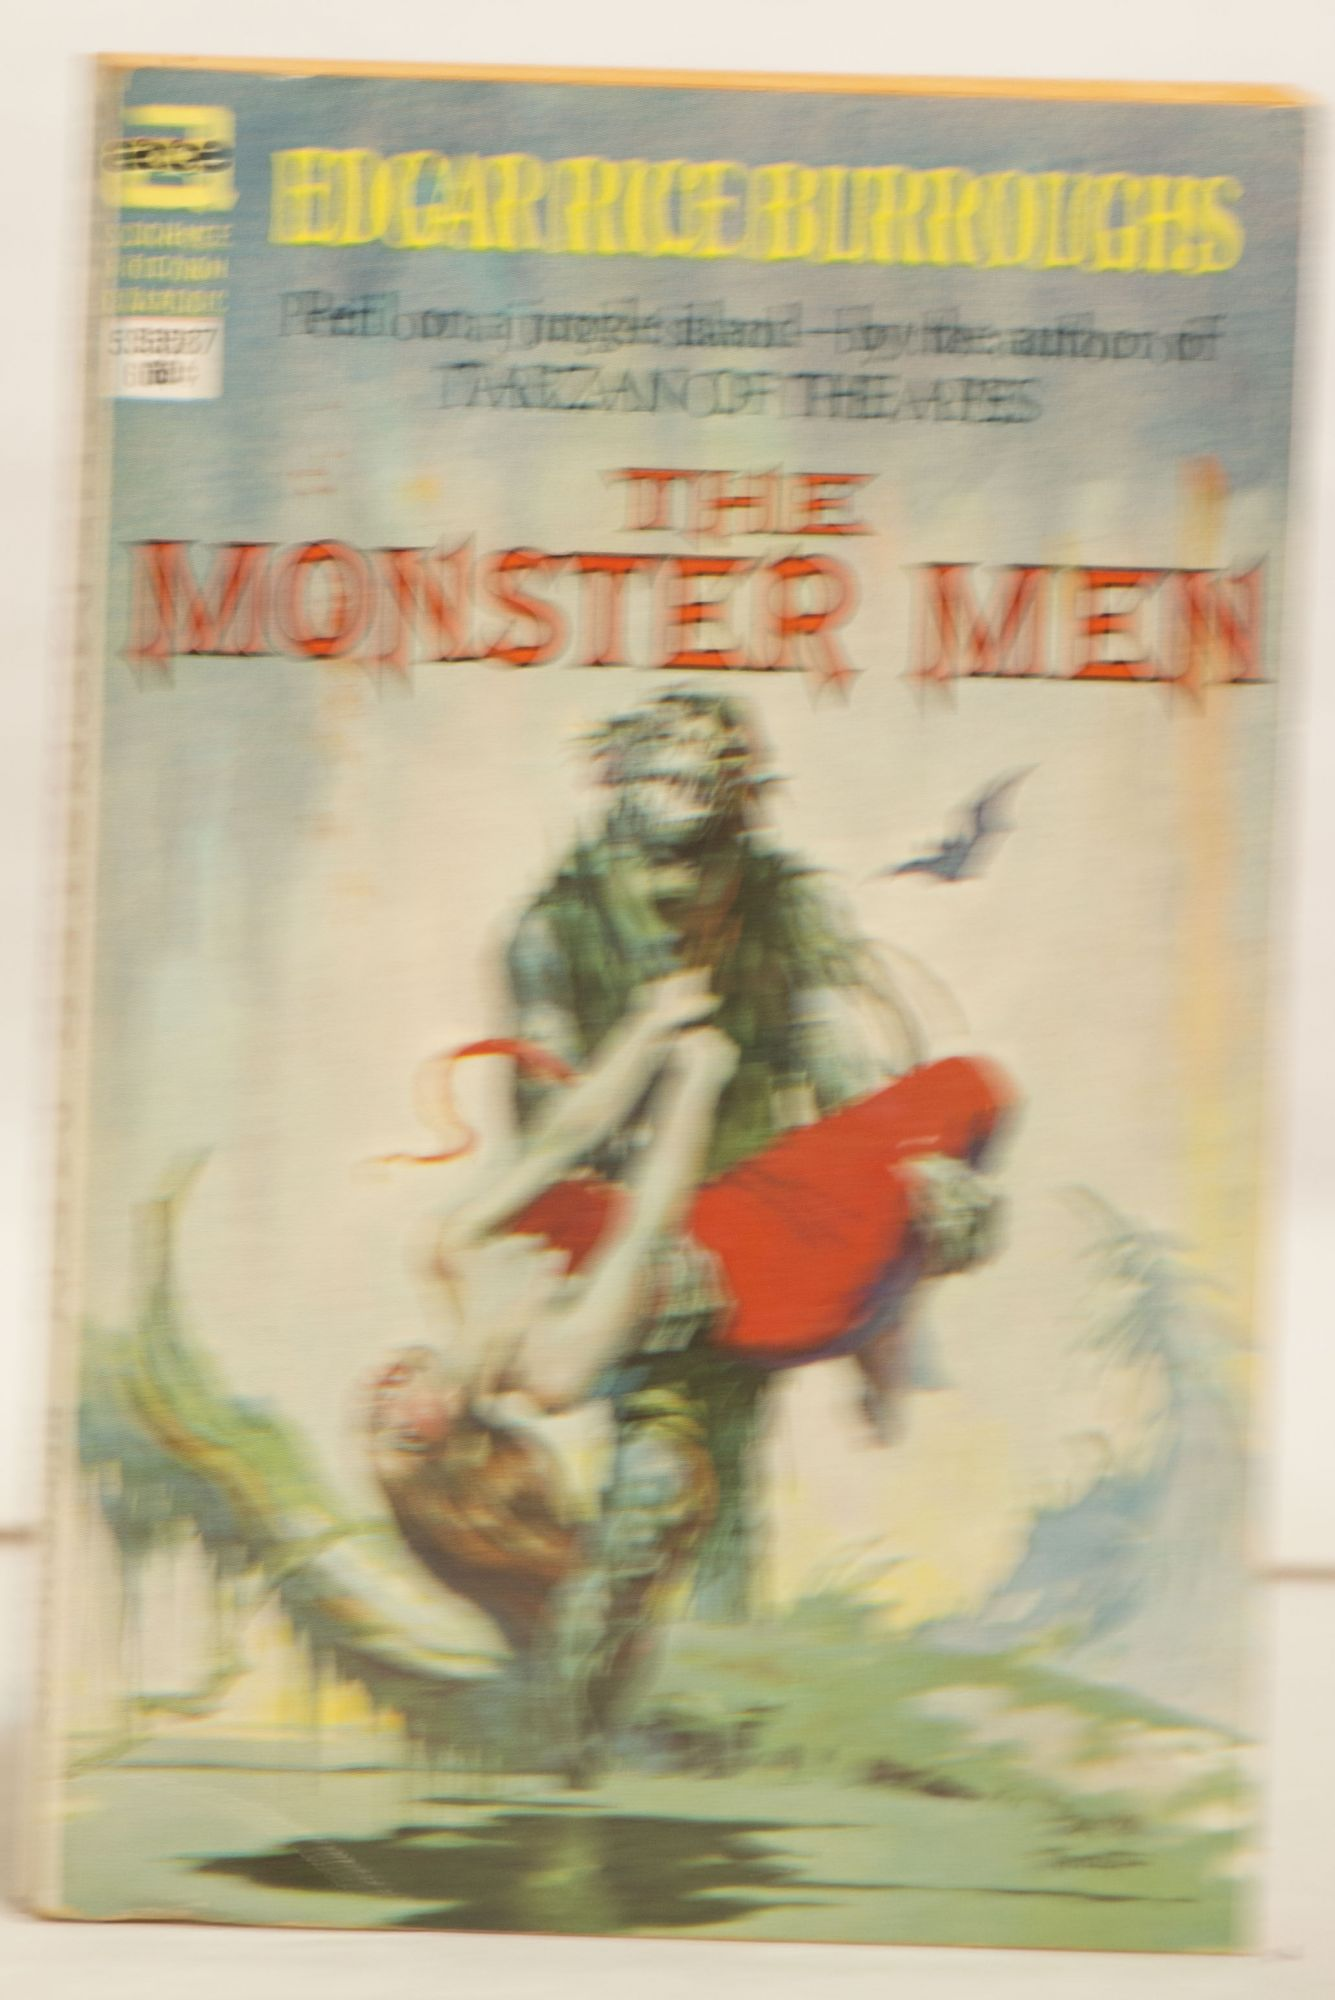 The Monster Men 53587 60¢ Peril on a Jungle Island -- by the Author of Tarzan of the Apes